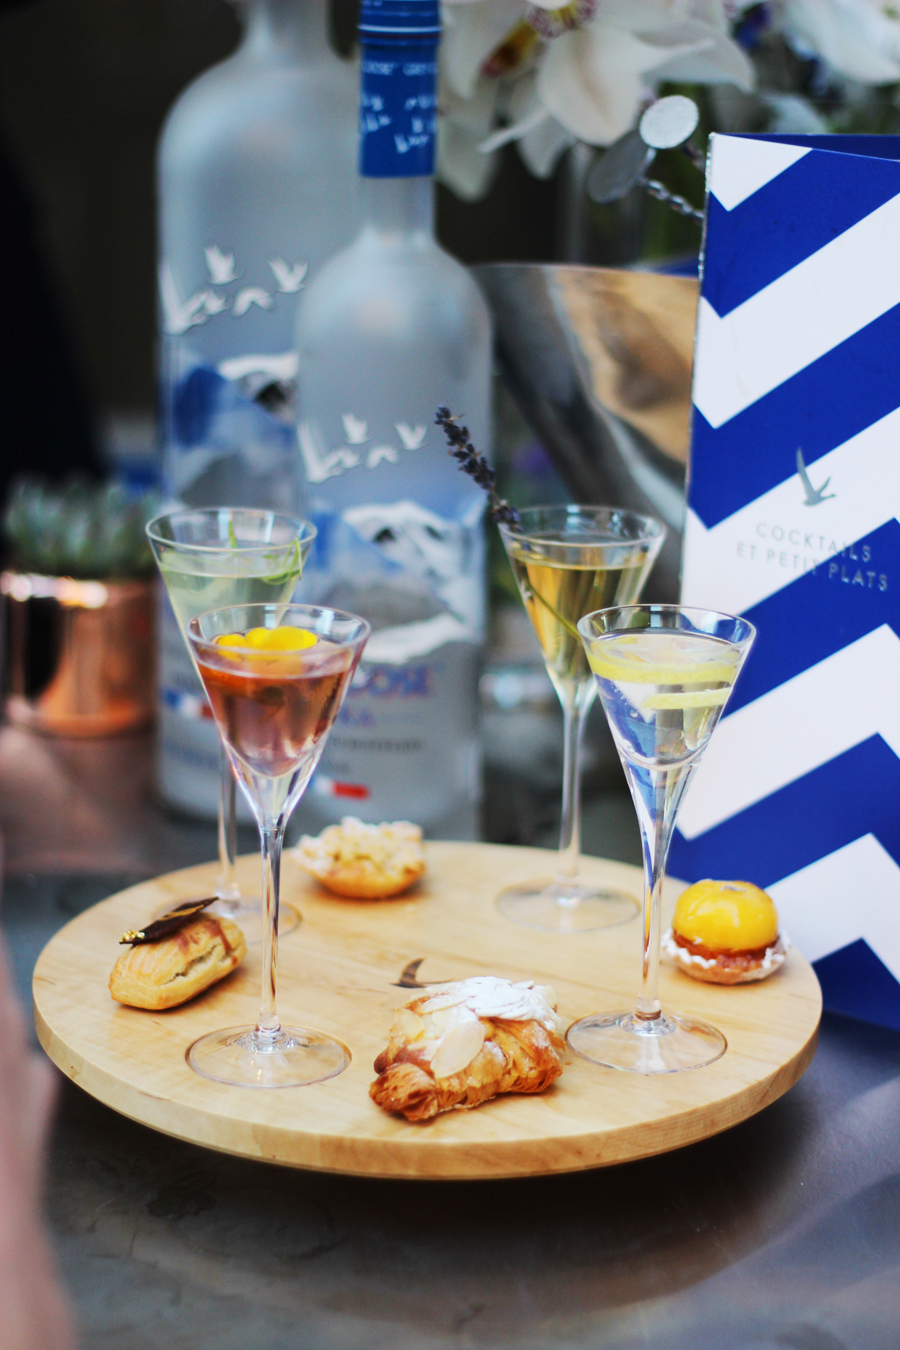 GREY GOOSE Boulangerie François Terrasse launch at Harvey Nichols London